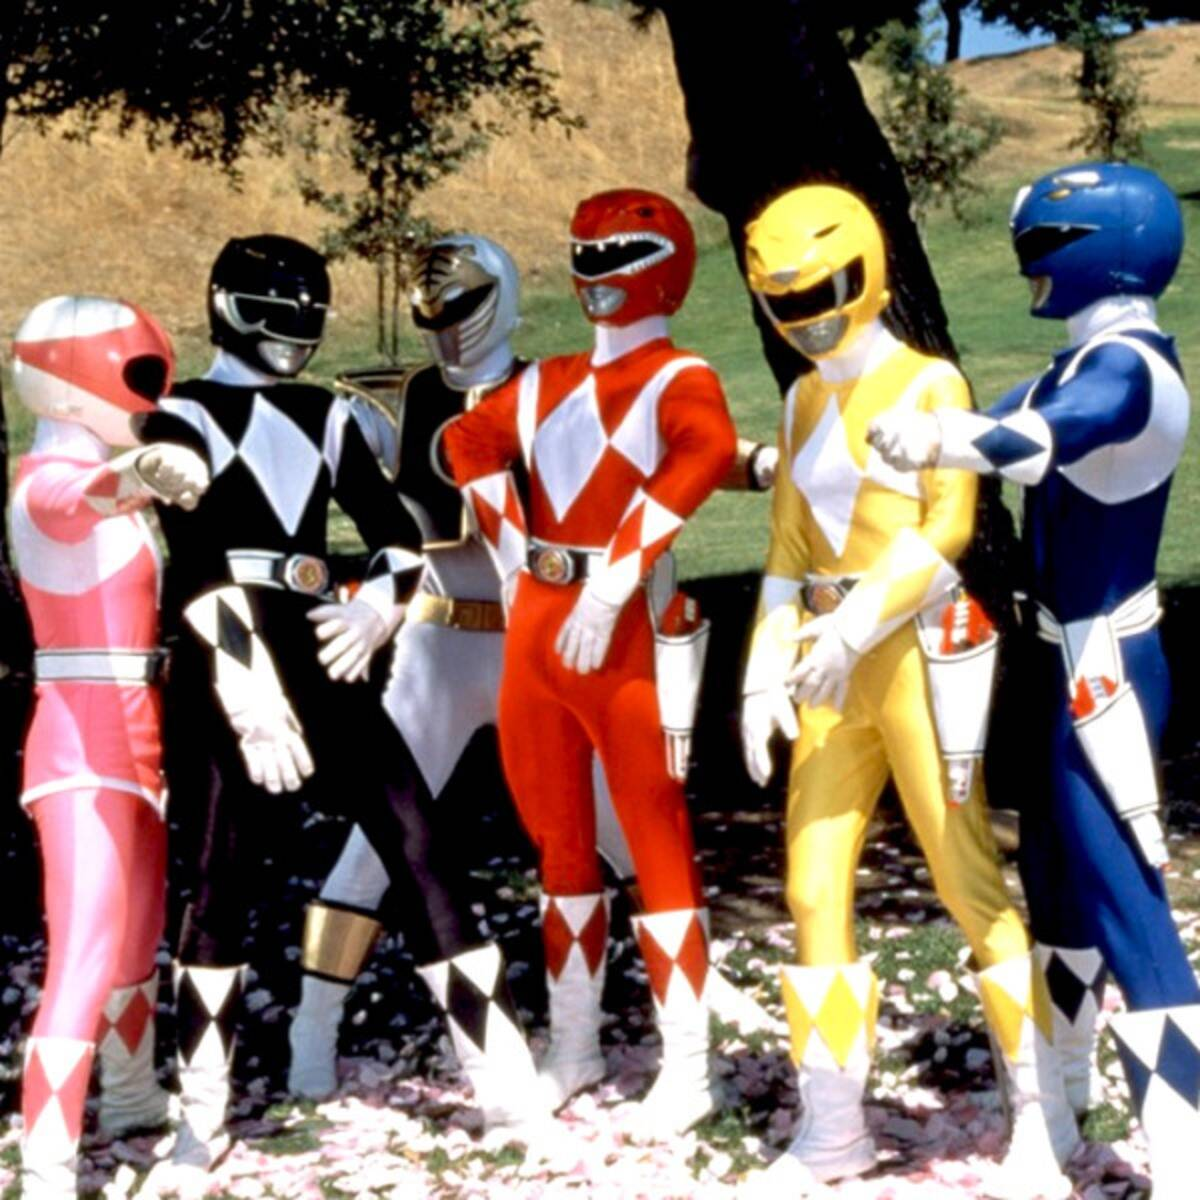 Rs 600x600 140507083837 600.mighty Morphin Power Rangers.jl.050714